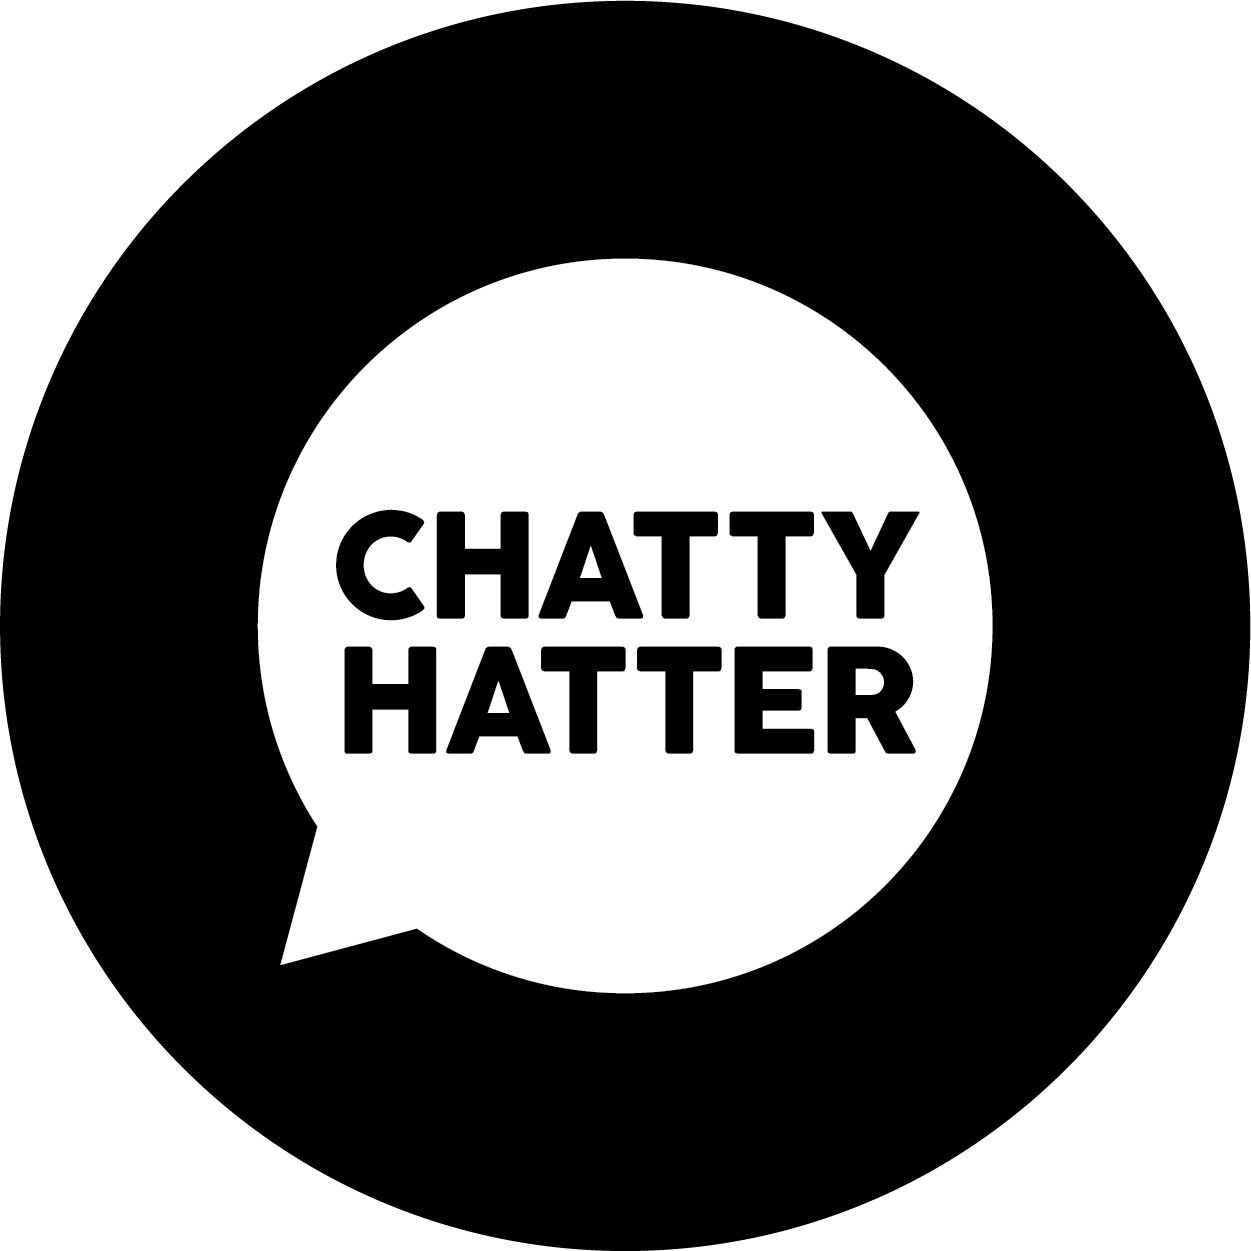 Chatty Hatter